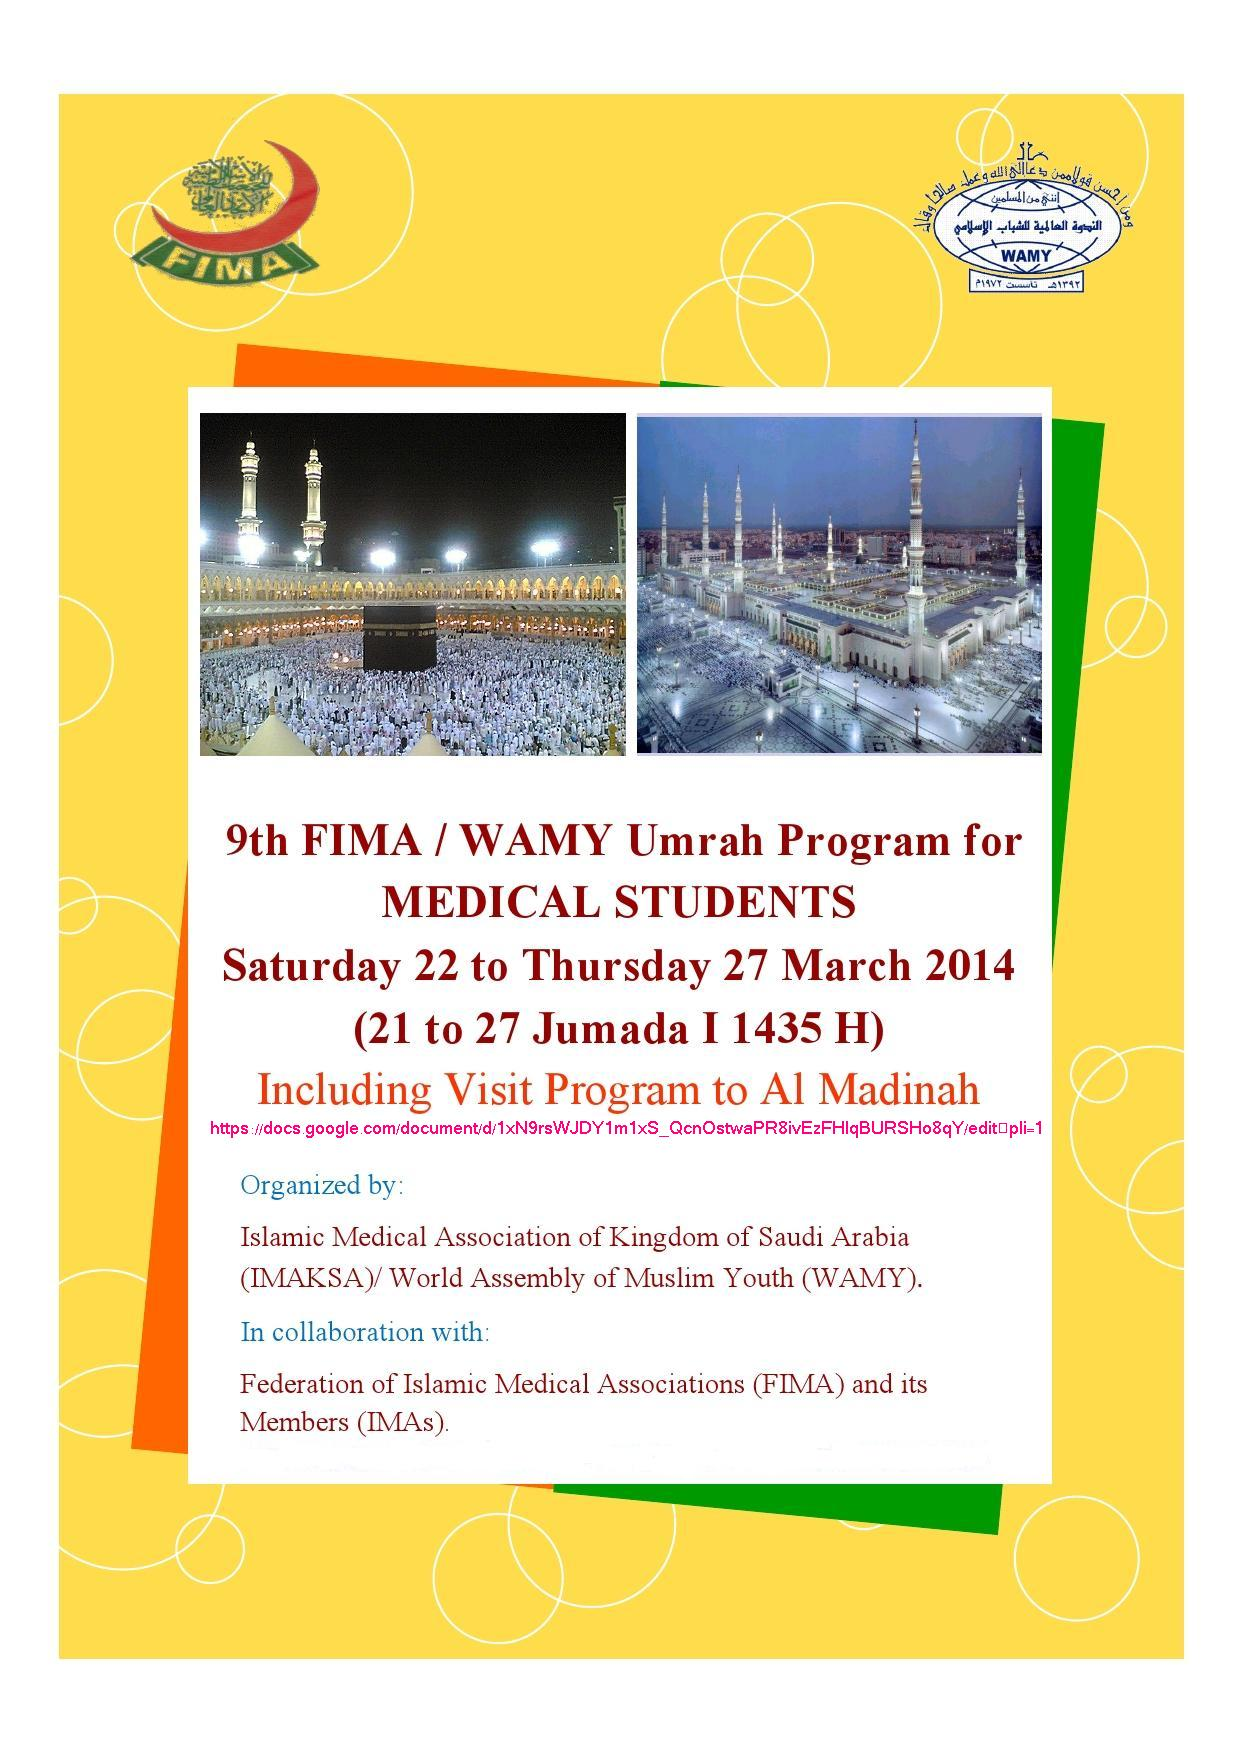 9th FIMA / WAMY Umrah Profram for Medical Students